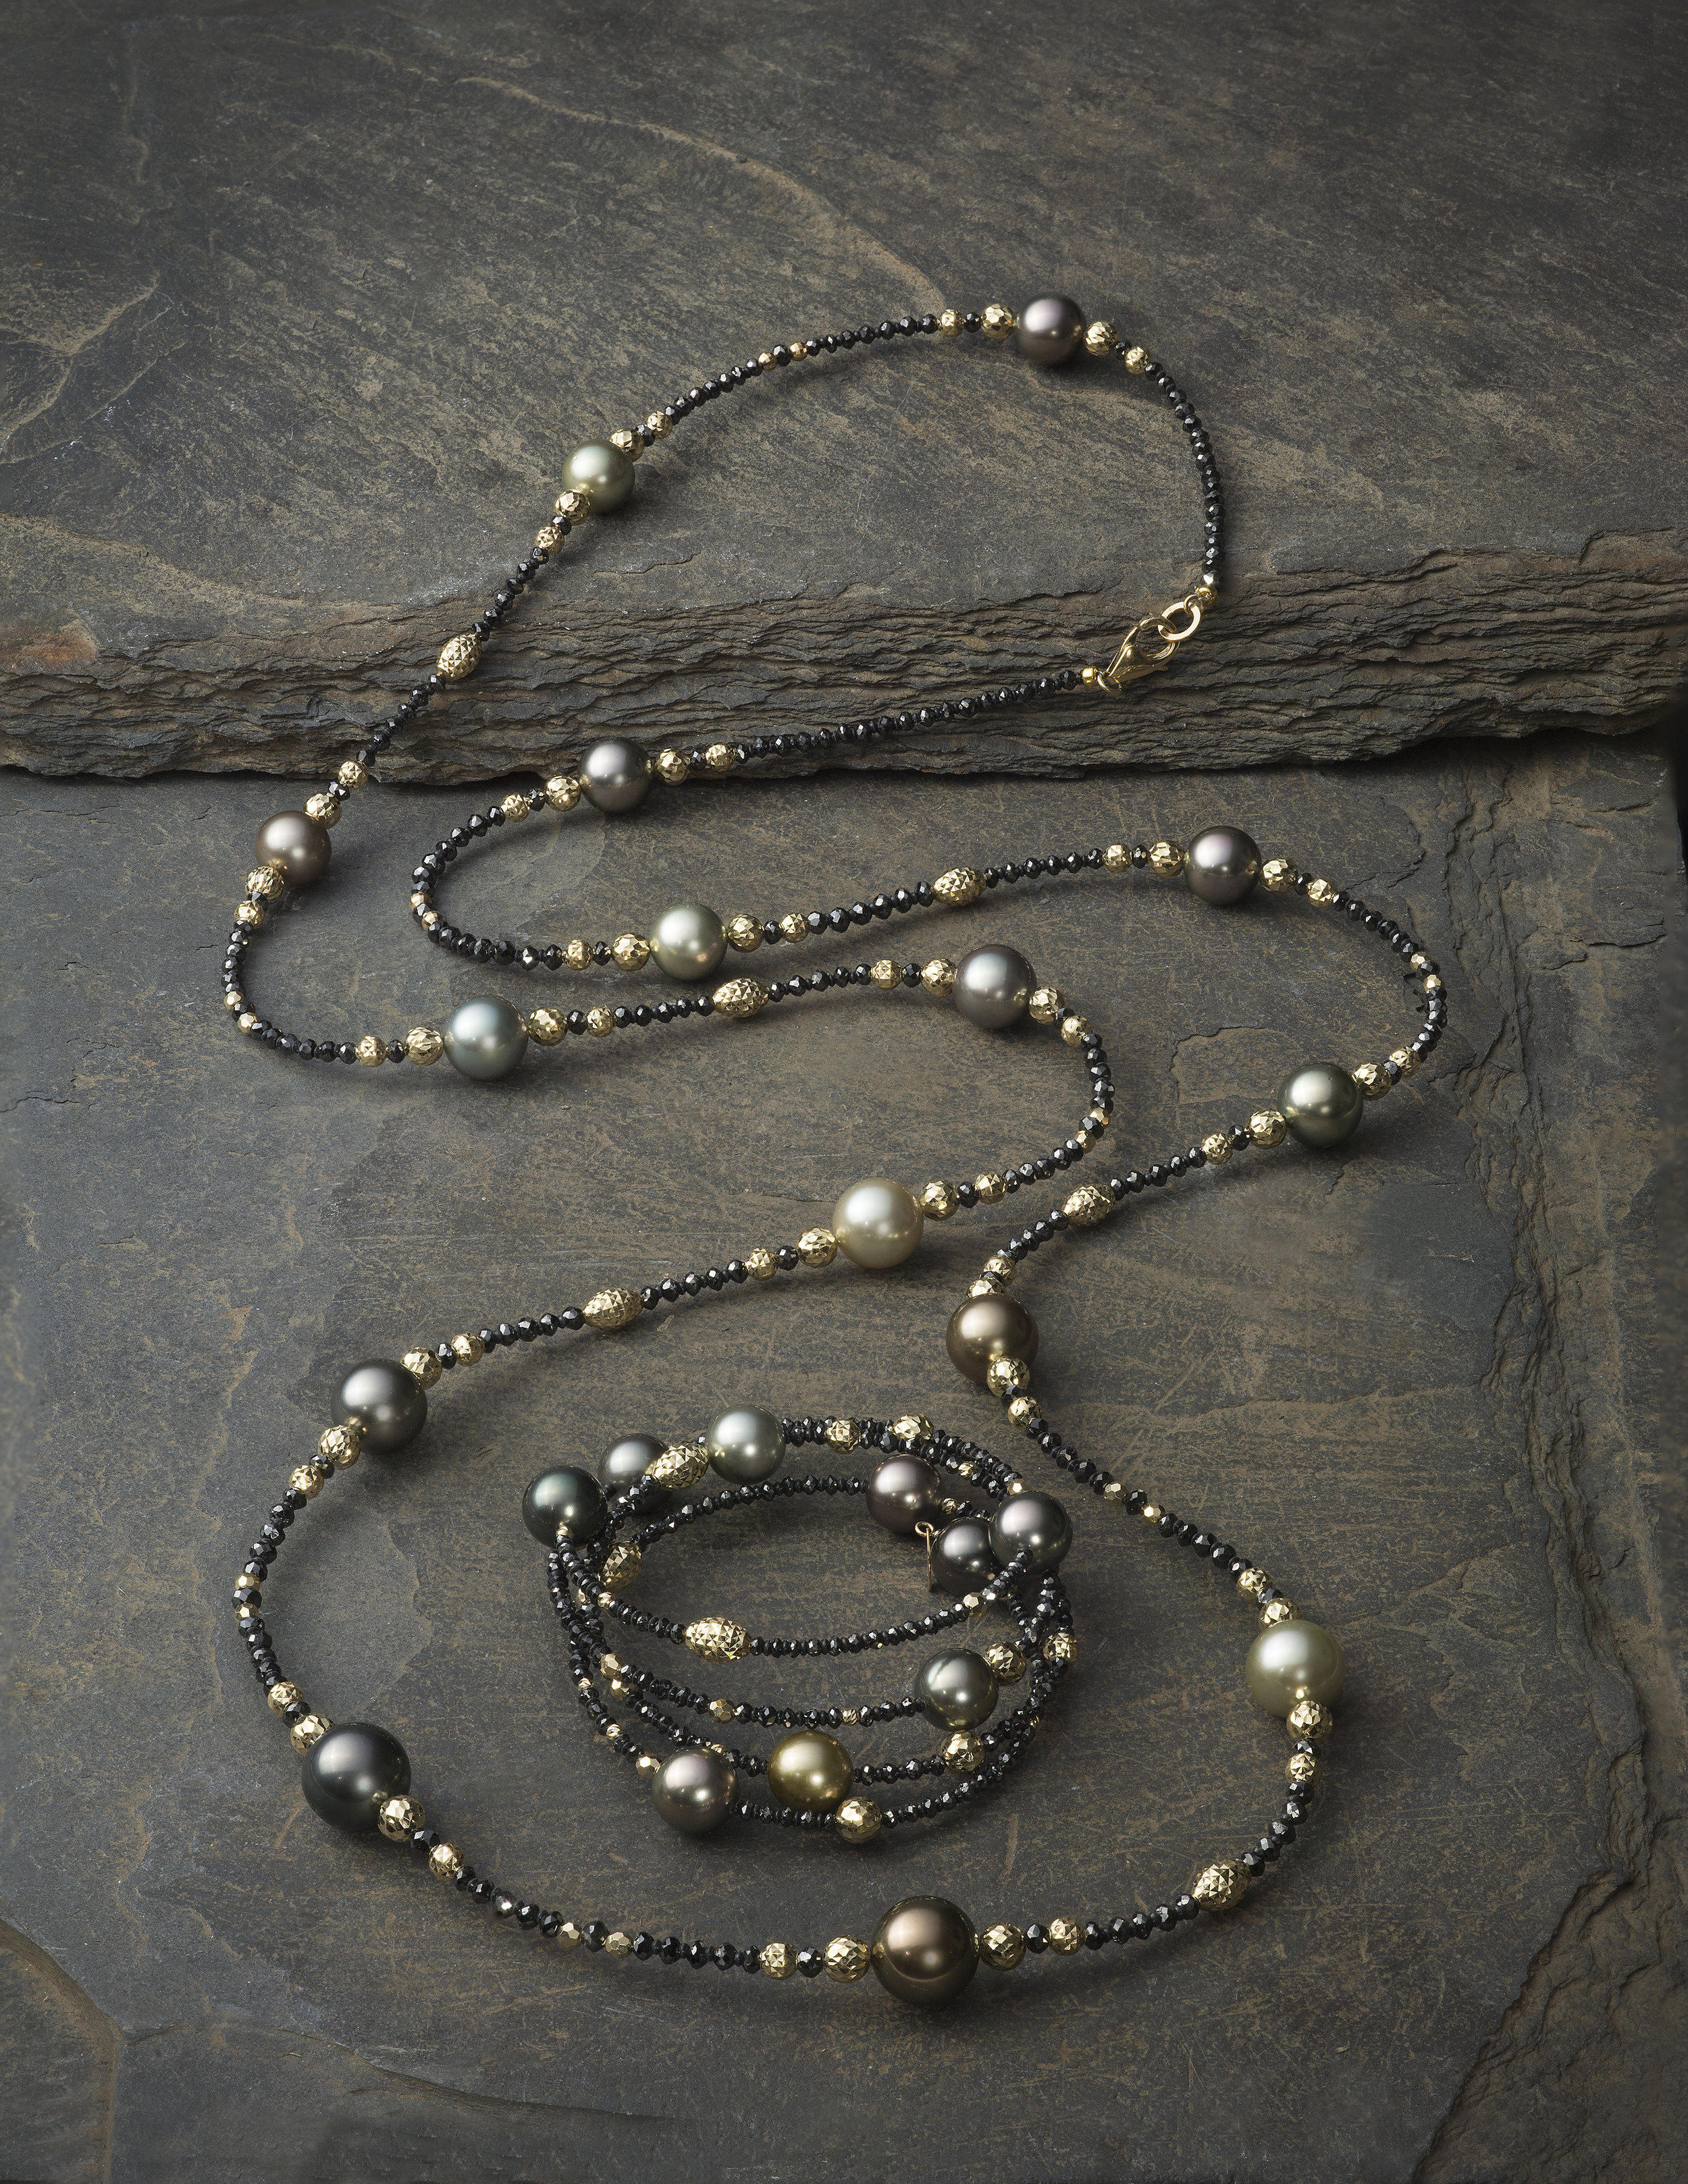 jewelry_pearls_still_life_new_york_photographer